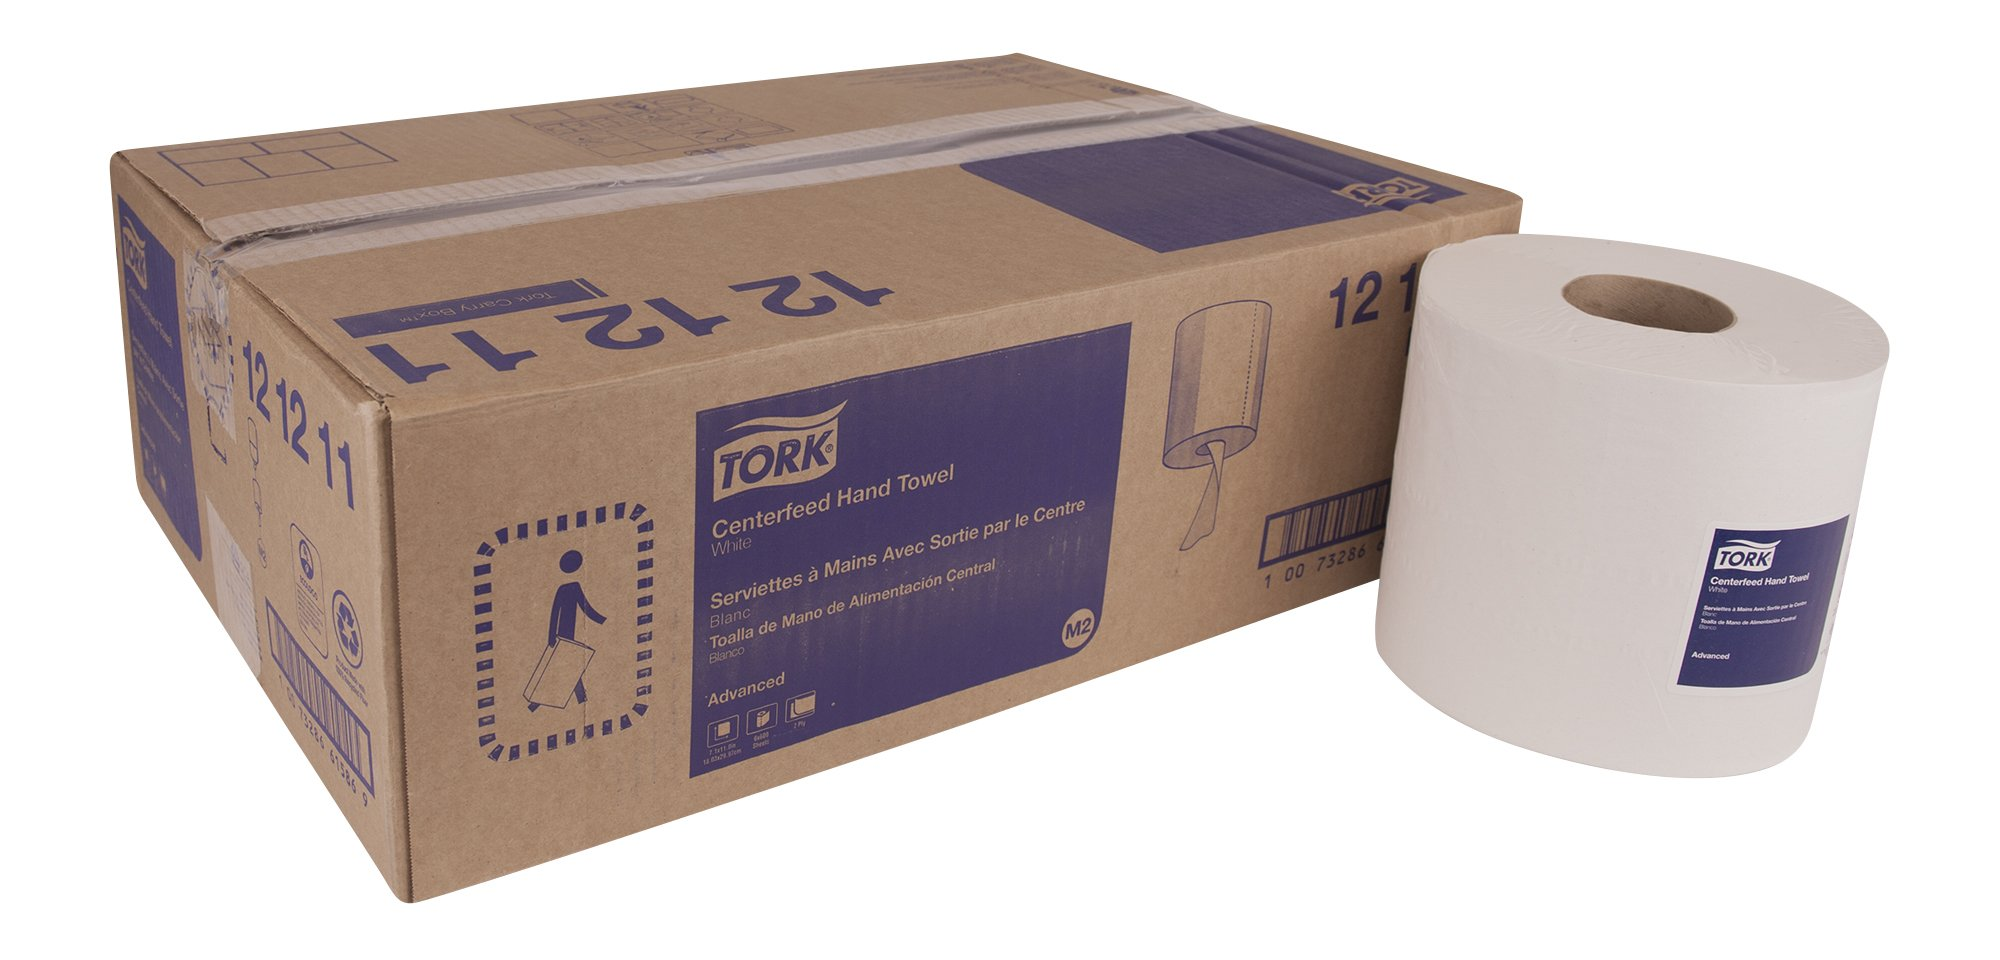 Tork Advanced 121211 Soft Centerfeed Hand Towel, 2-Ply, 7.1'' Width x 11.8'' Length, White (Case of 6 Rolls, 600 per Roll, 3,600 Towels) for use with Tork 559020A Or 559028A